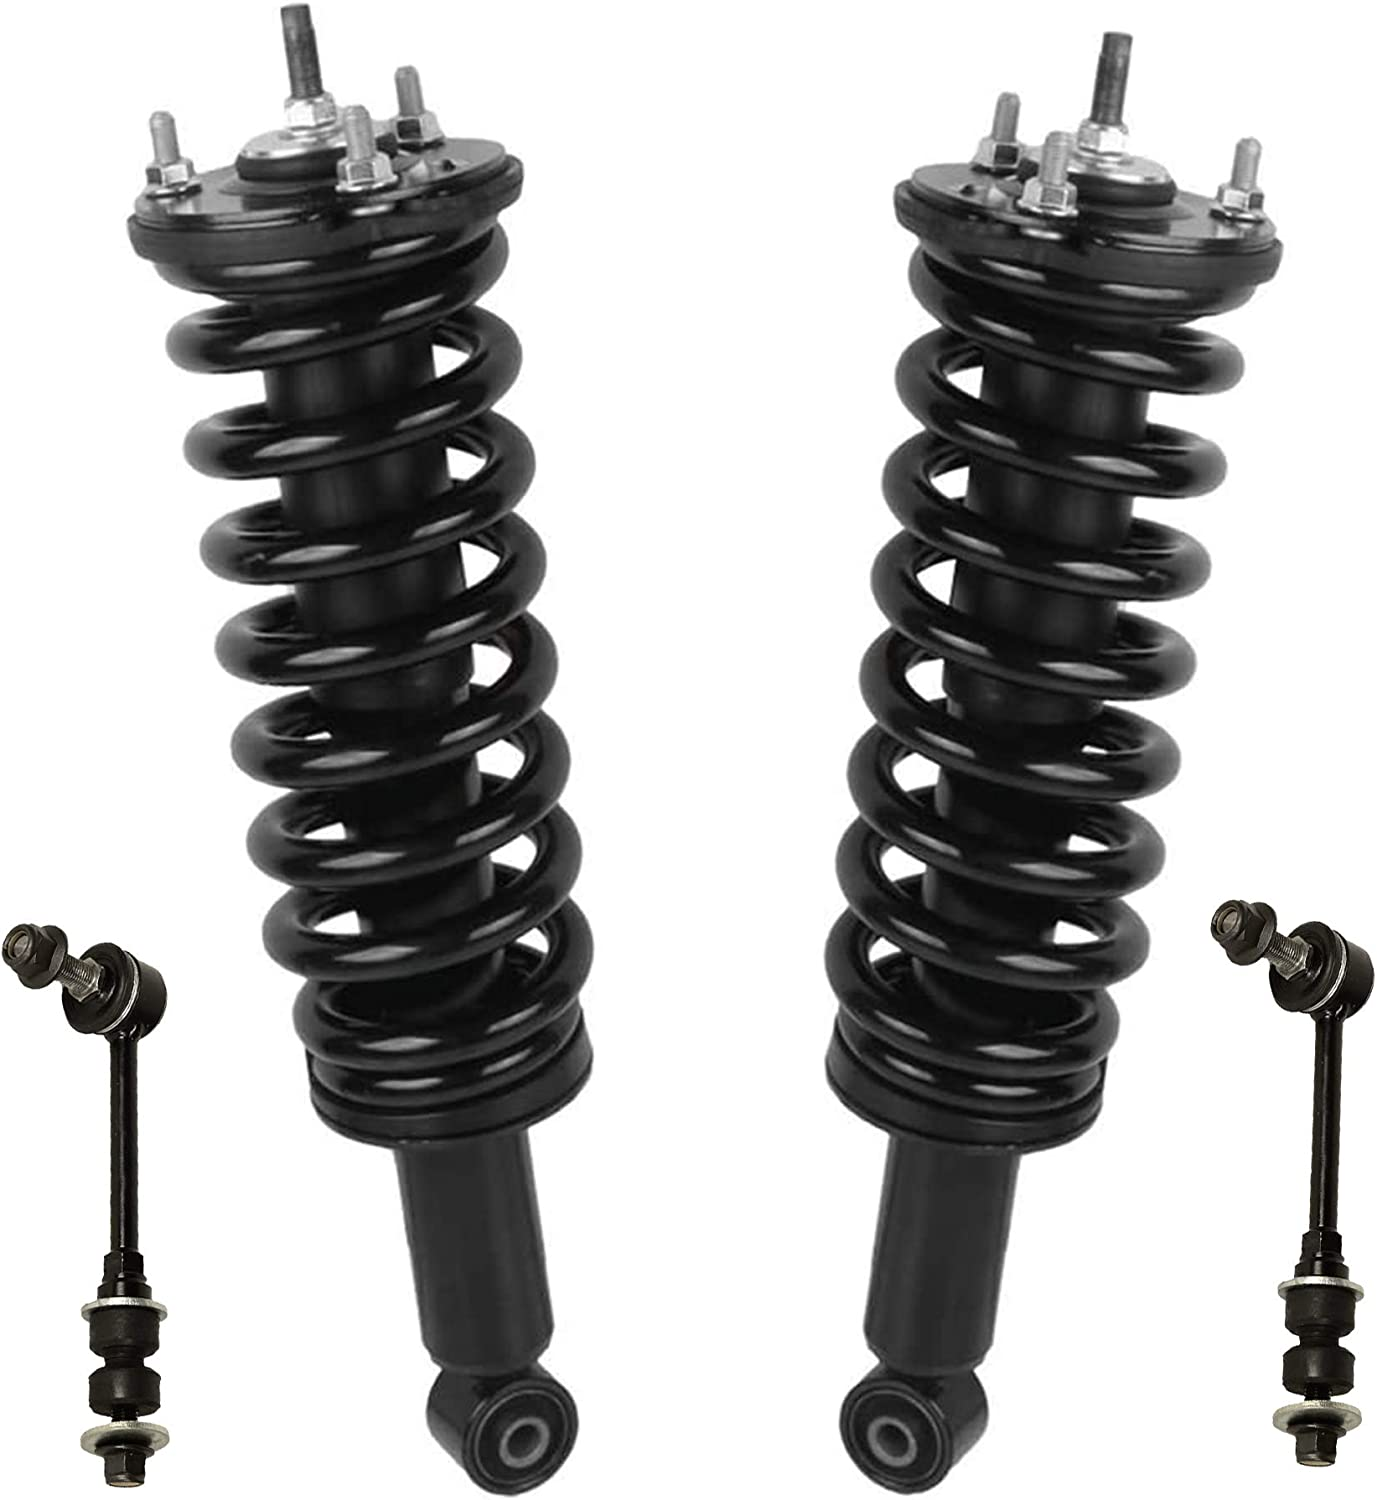 Detroit Axle 4pc Set Stabilizer//Sway Bar Link Replacement for 2003 2004 2005 2006 Toyota Tundra Complete Front Quick Struts /& Coil Spring Assembly